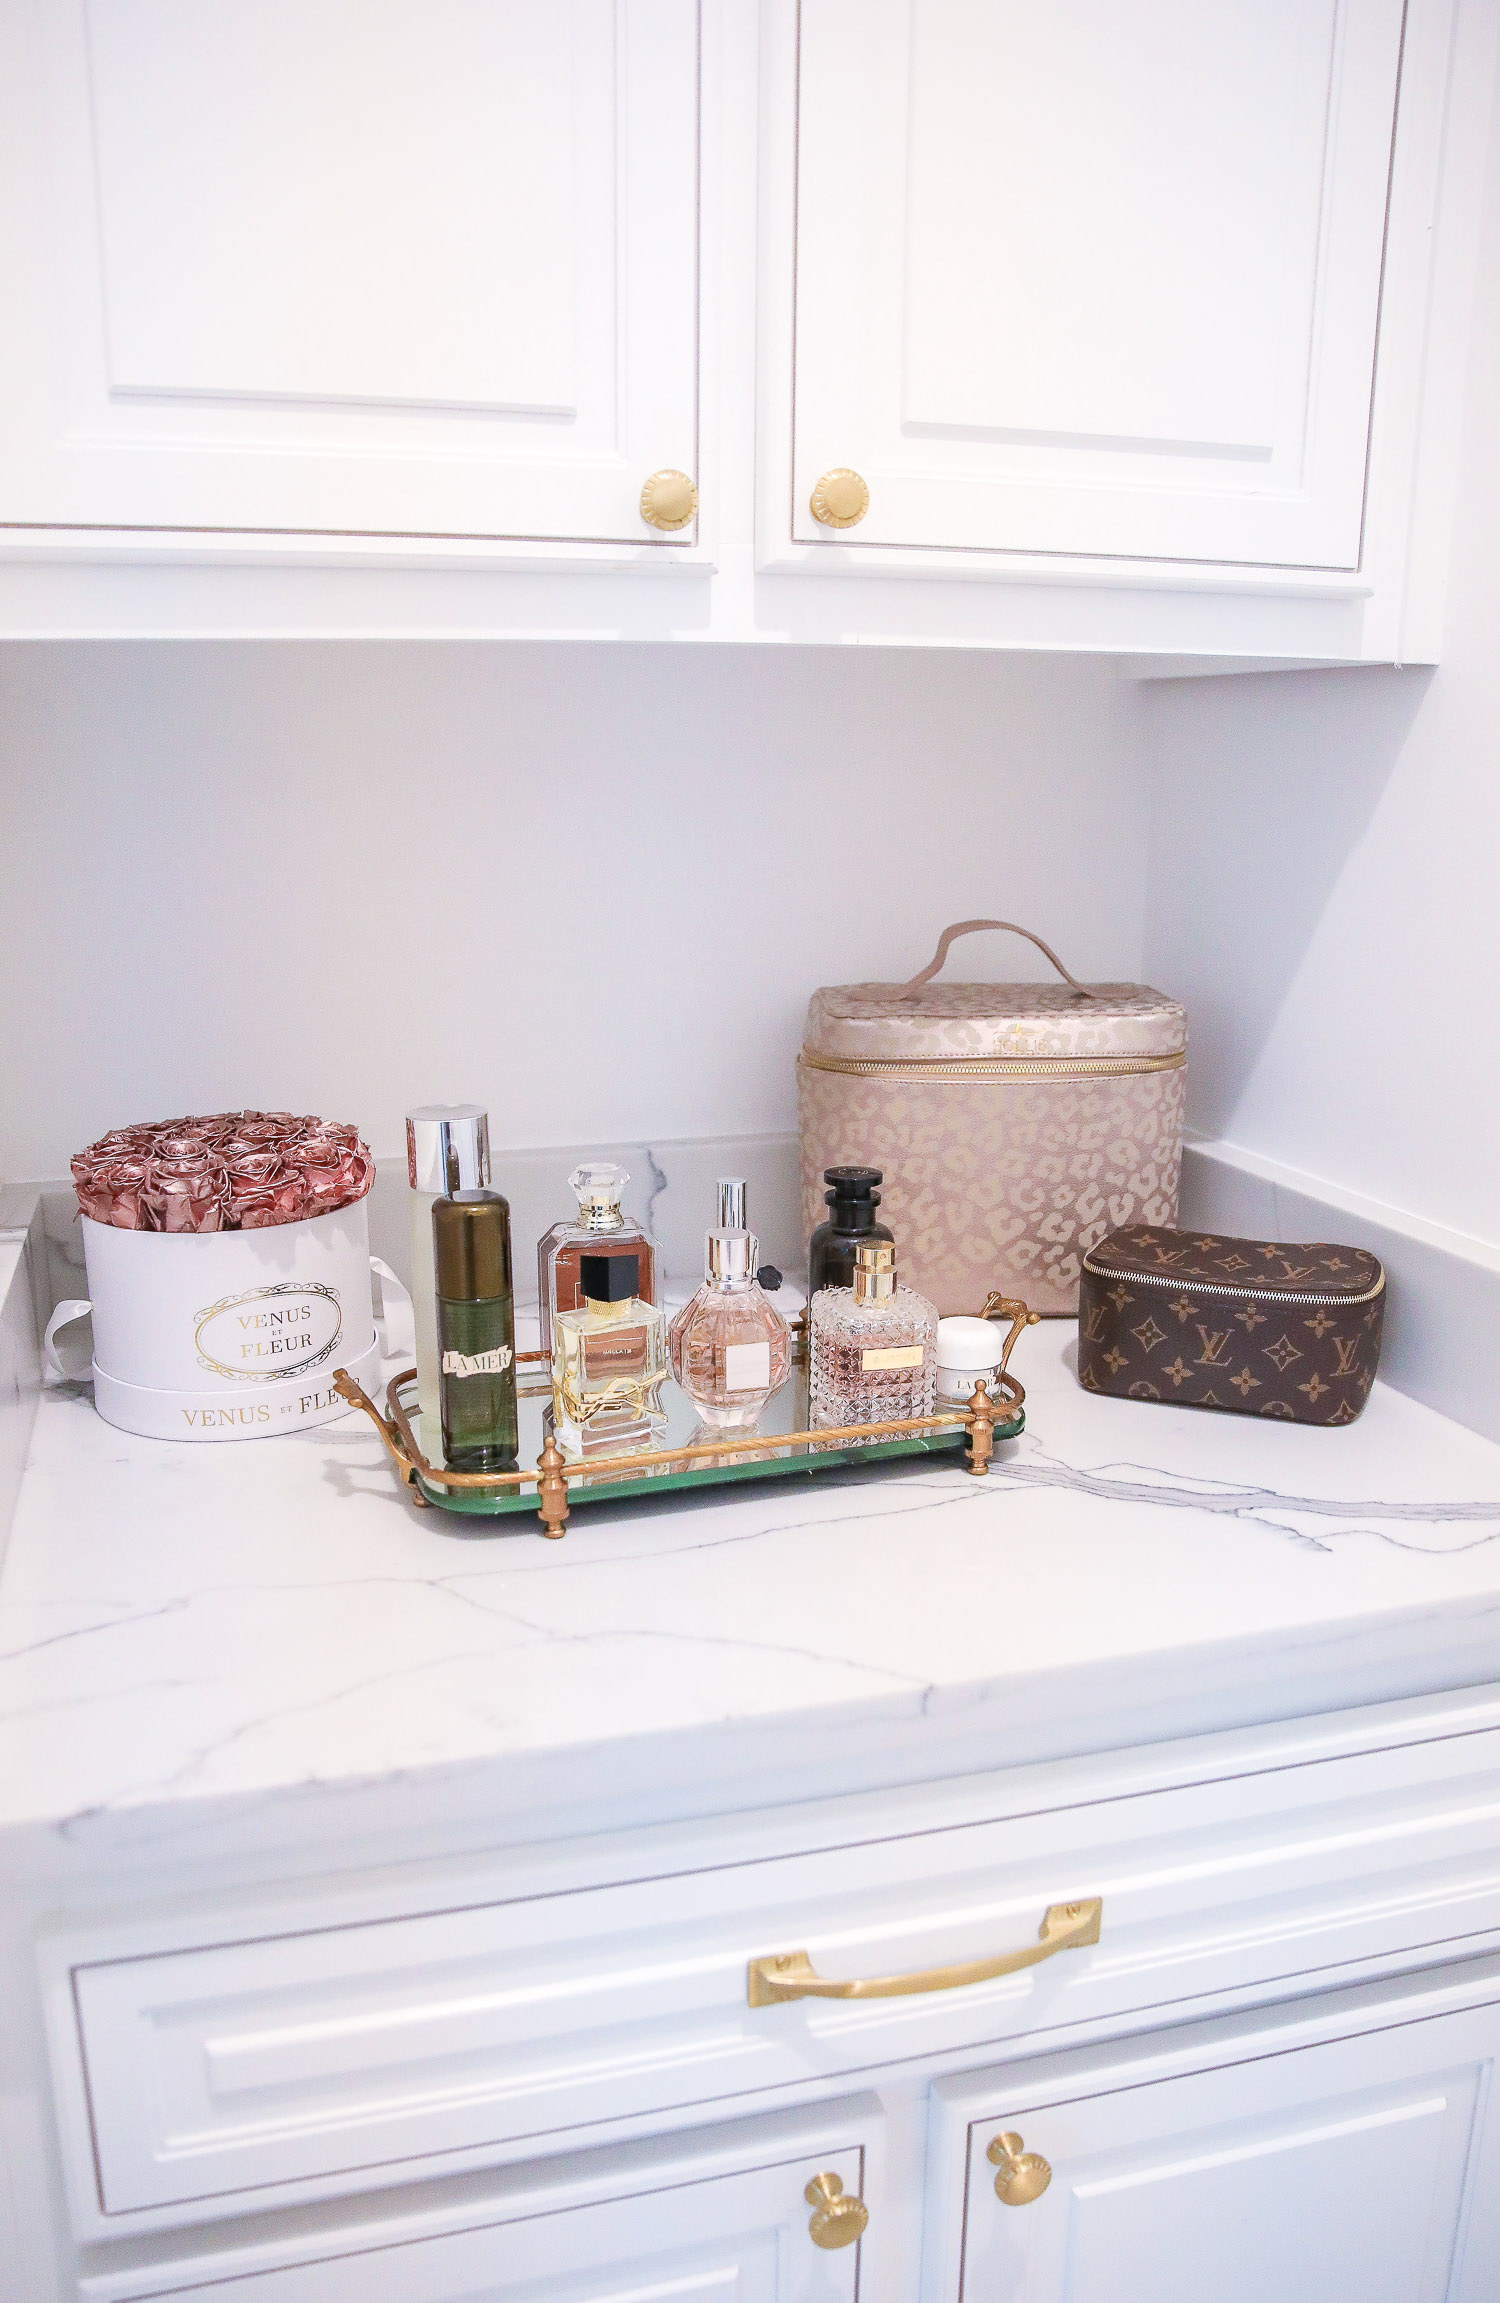 perfume tray, master bathroom decor, Louis Vuitton perfume | Nighttime Routine by popular US beauty blog, The Sweetest Thing: image of a bathroom with a gold tray containing various perfumes, Louis Vuitton makeup case, and leopard print makeup case.